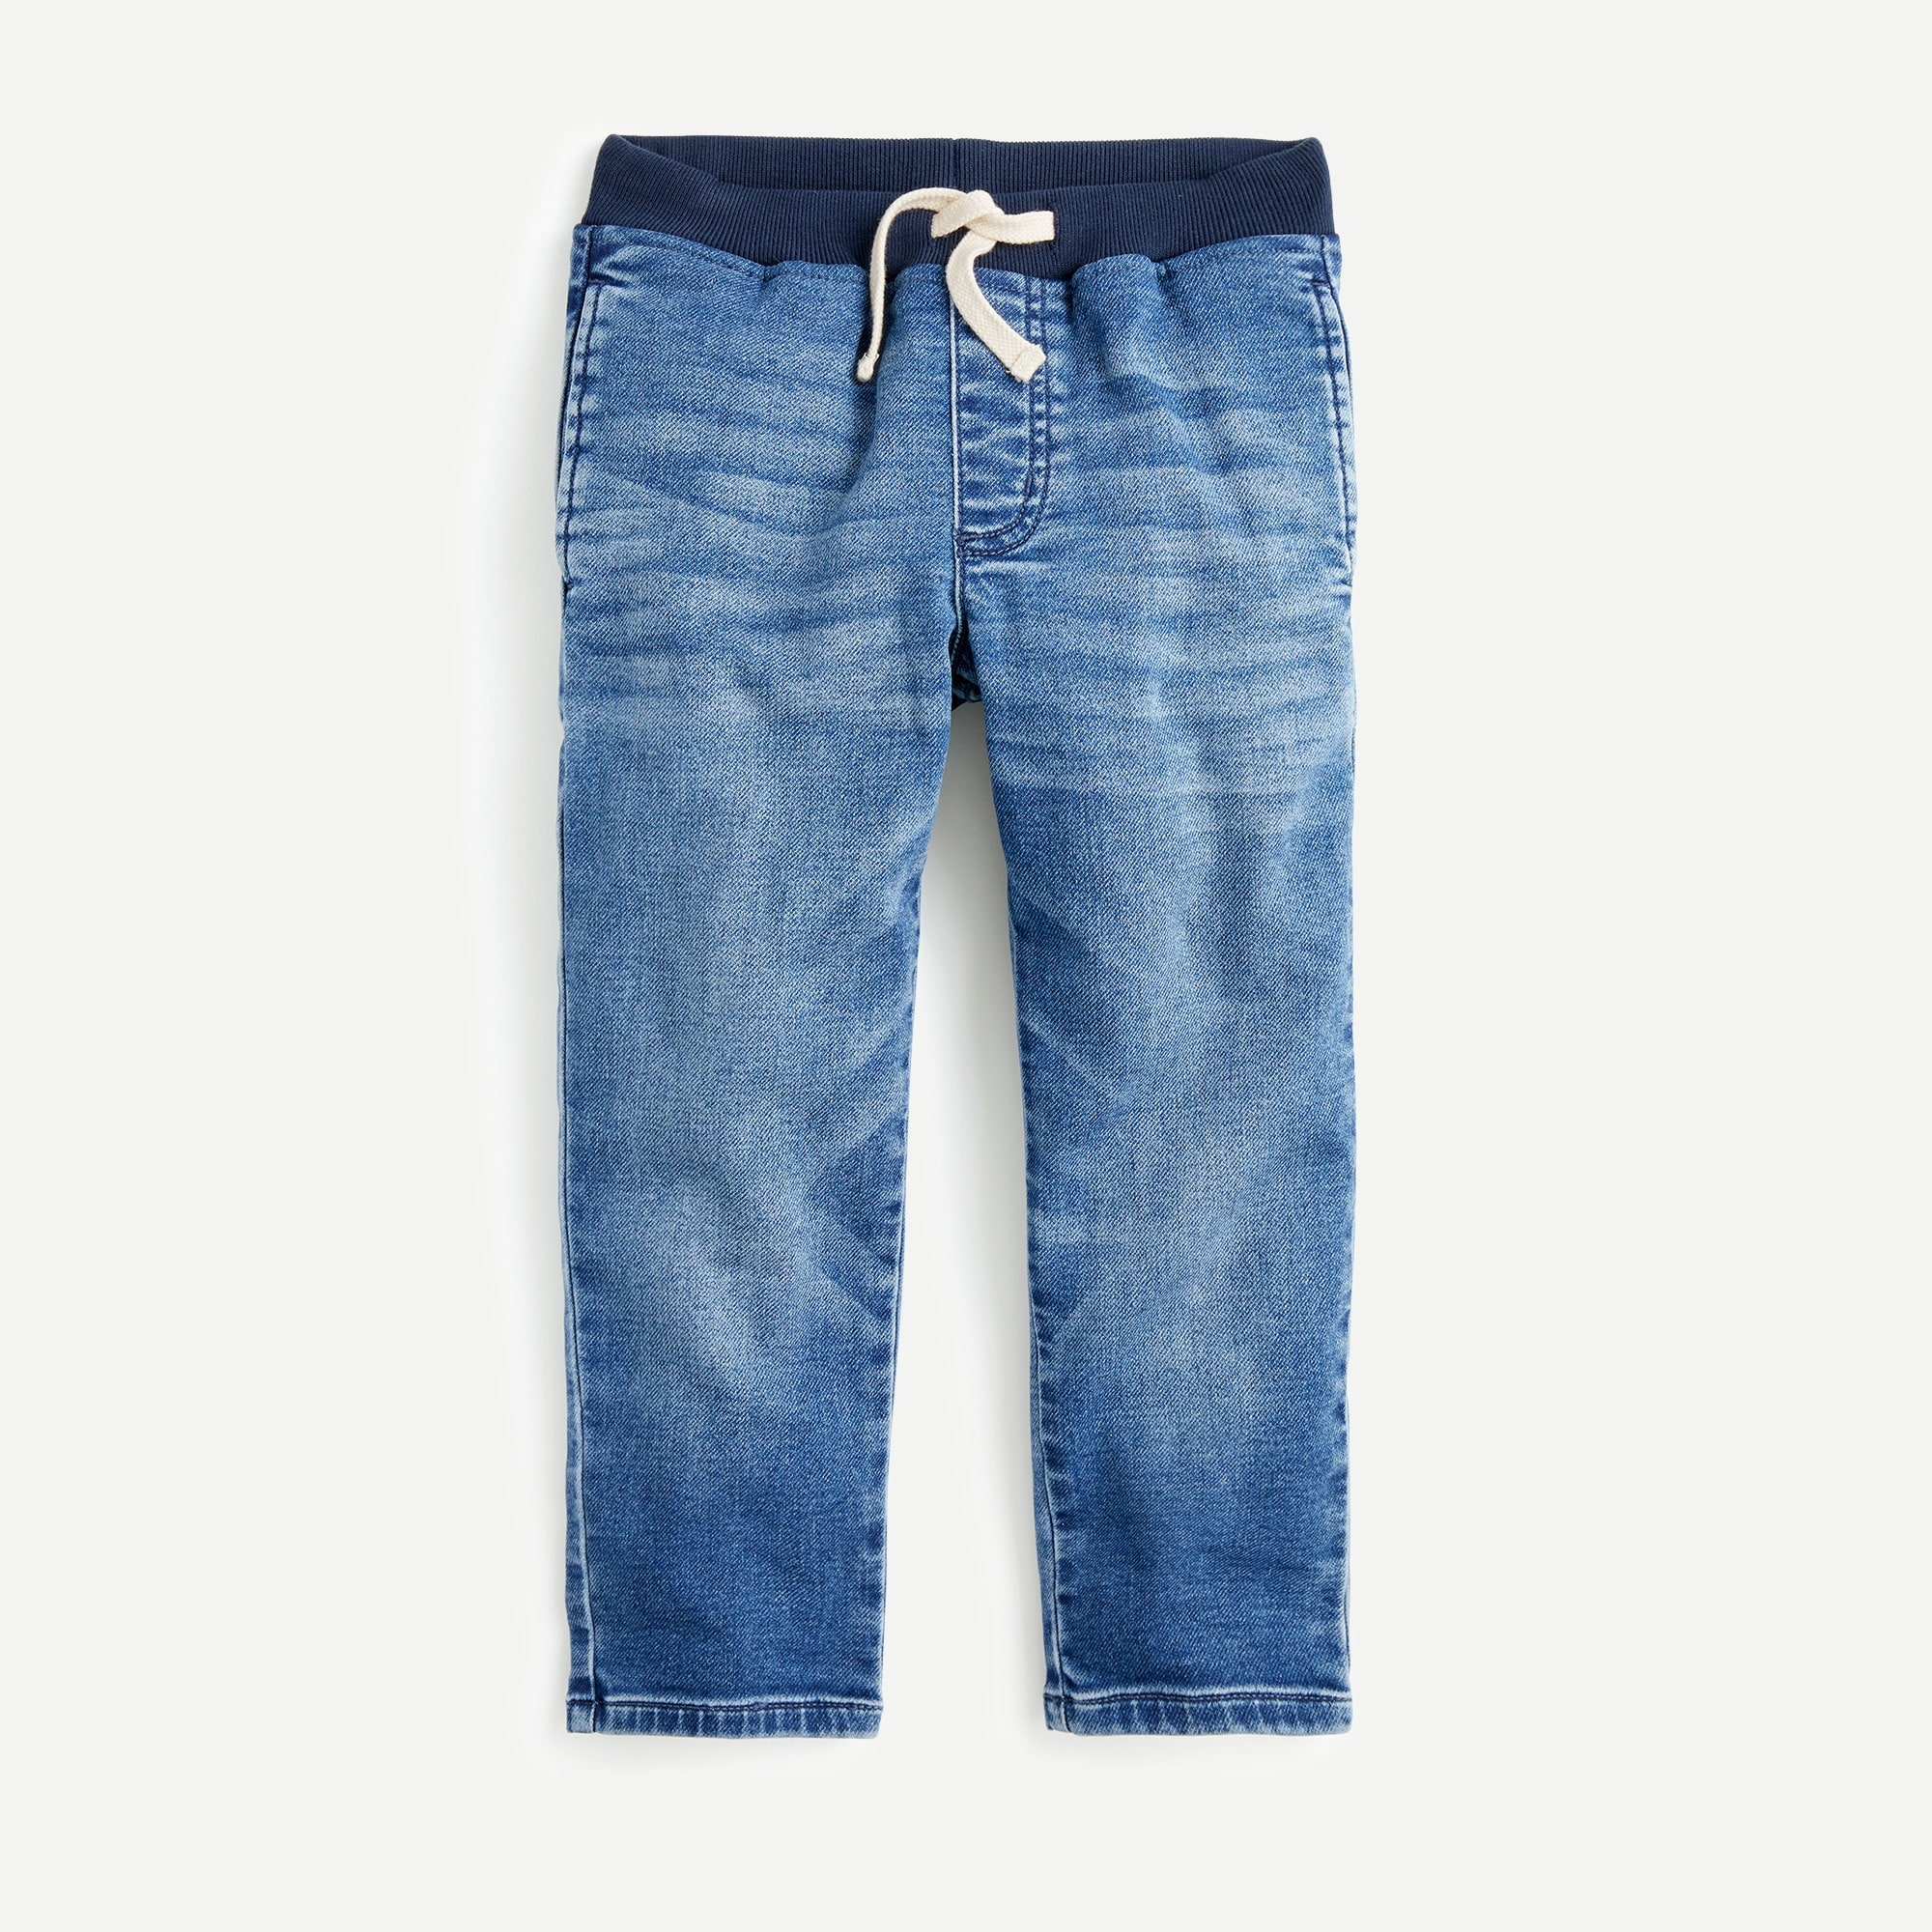 Image 2 for Boys' homeroom wash runaround jean in pull-on fit